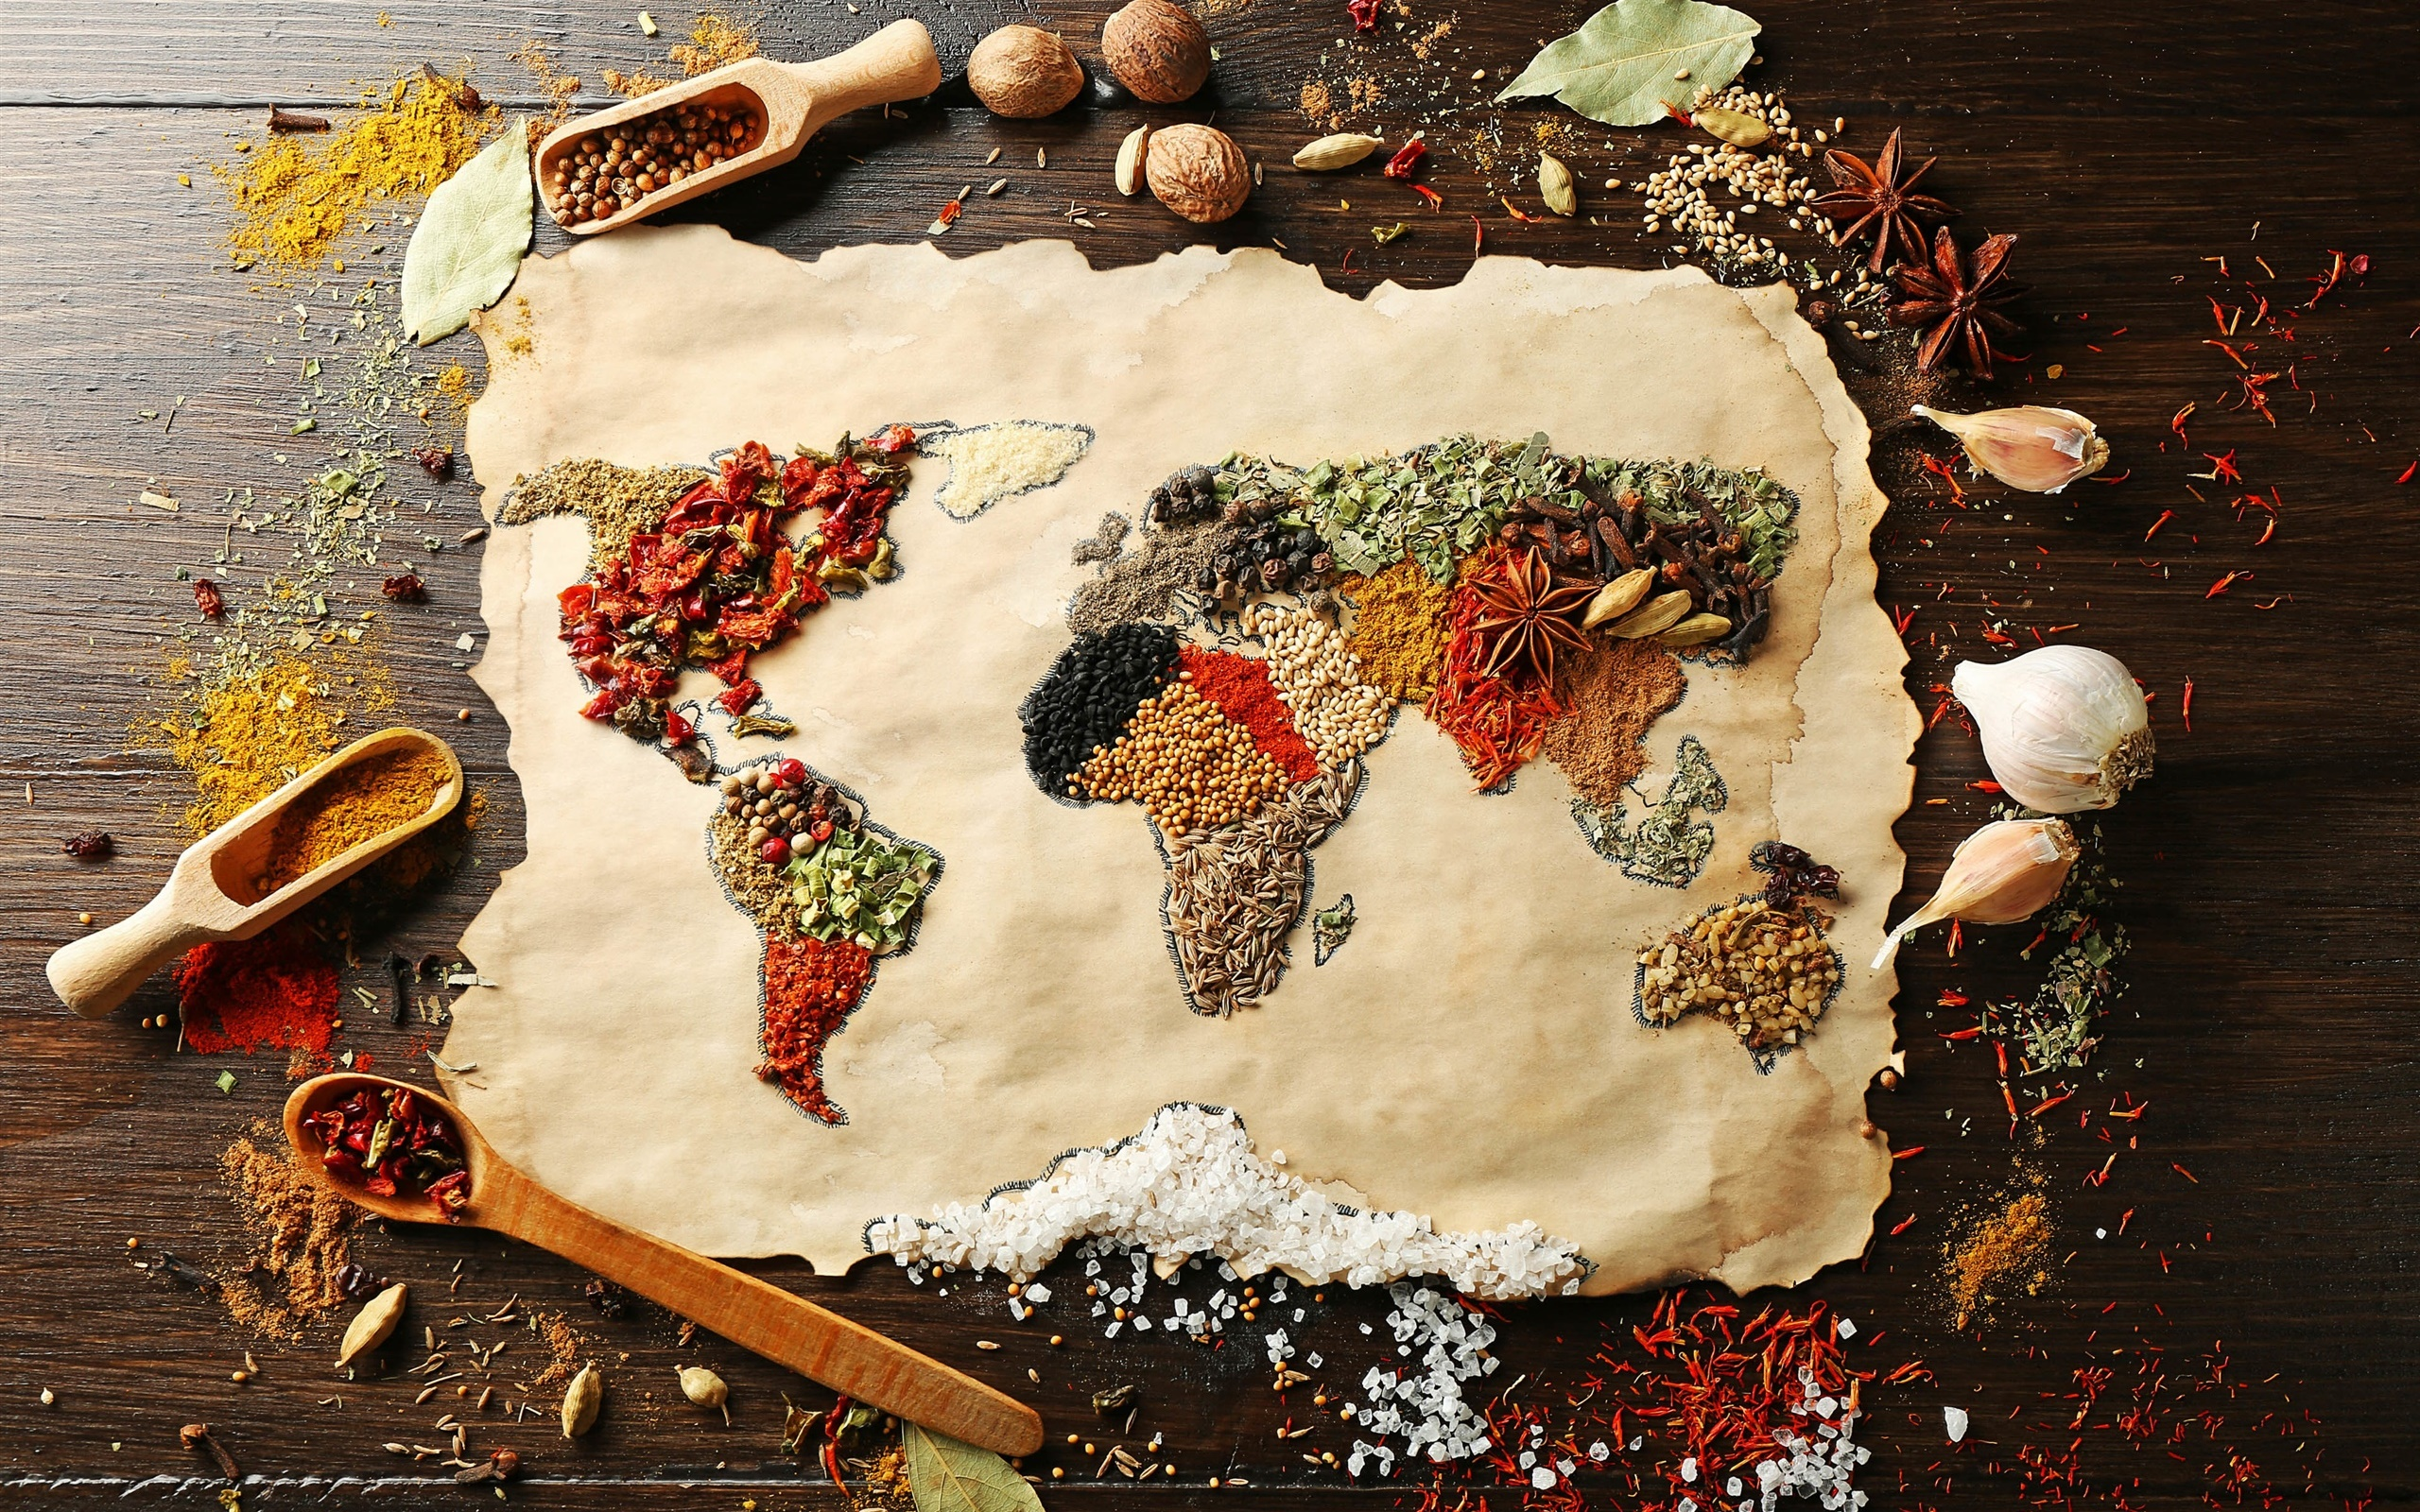 Food spices surface world map creative pictures desktop food spices surface world map creative pictures 2560x1600 wallpaper gumiabroncs Choice Image